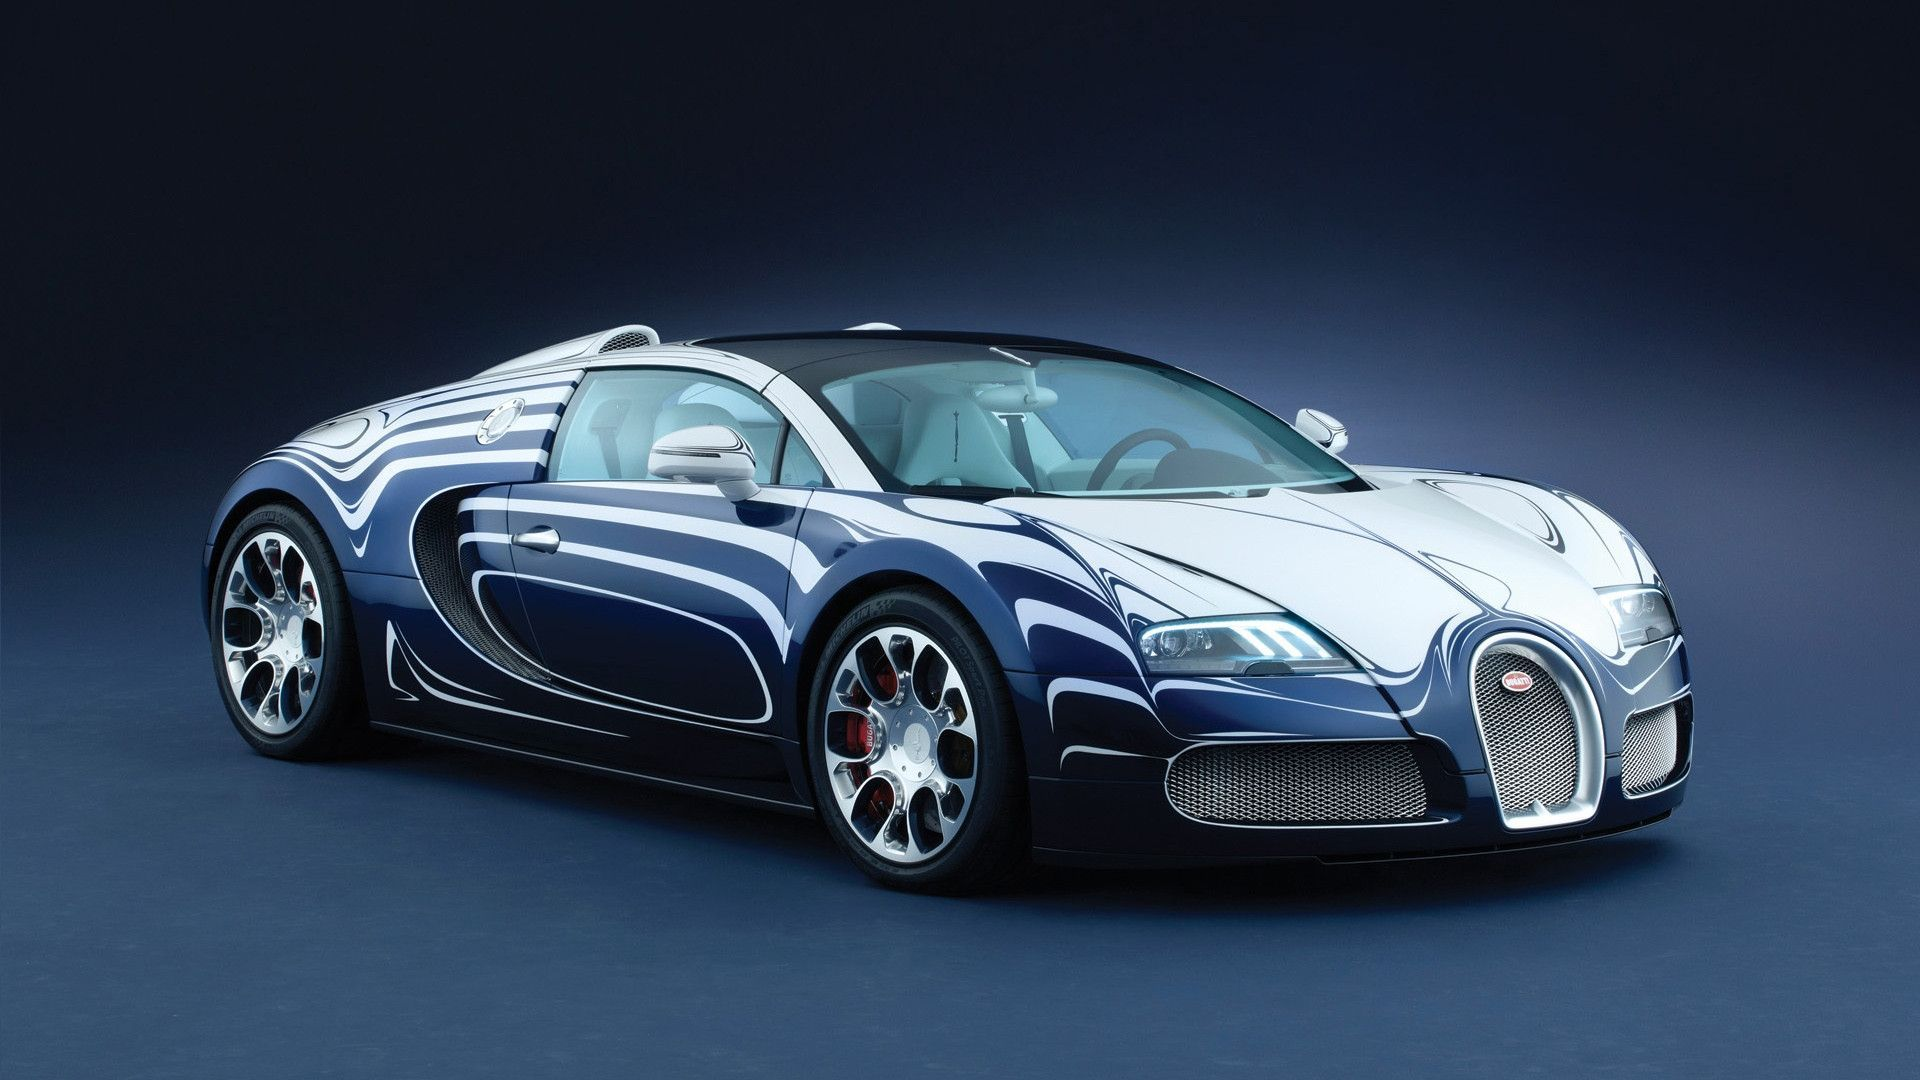 awesome bugatti wallpapers cars backgrounds hd wallpapers rh pinterest com